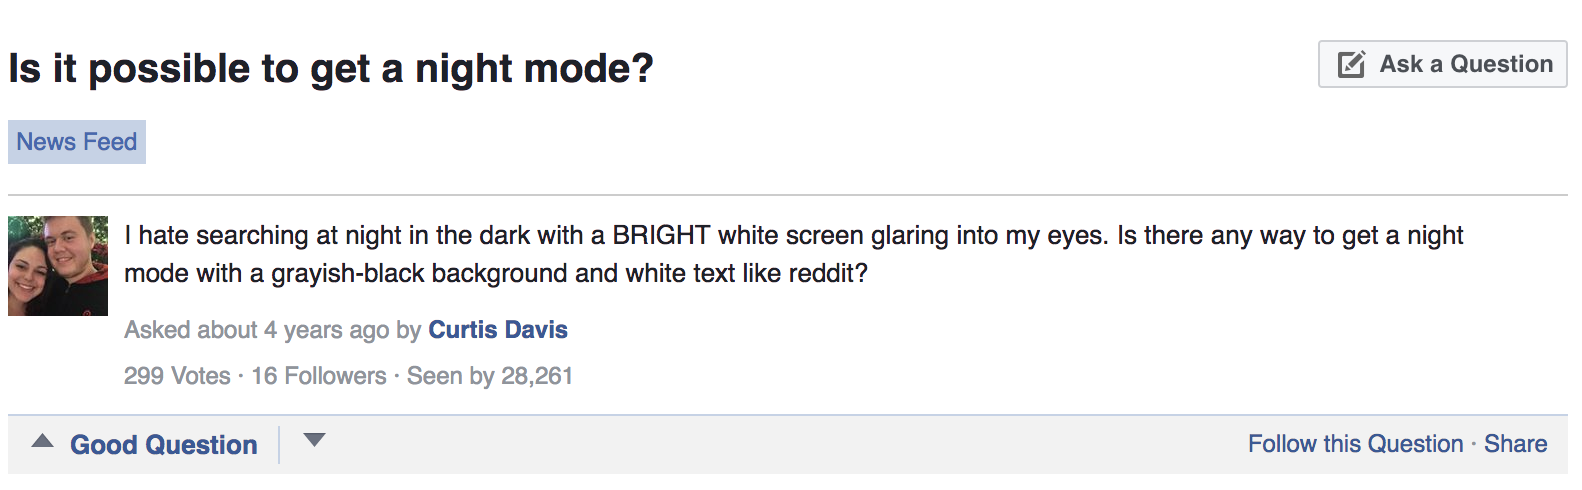 Is-it-possible-to-get-night-mode-facebook